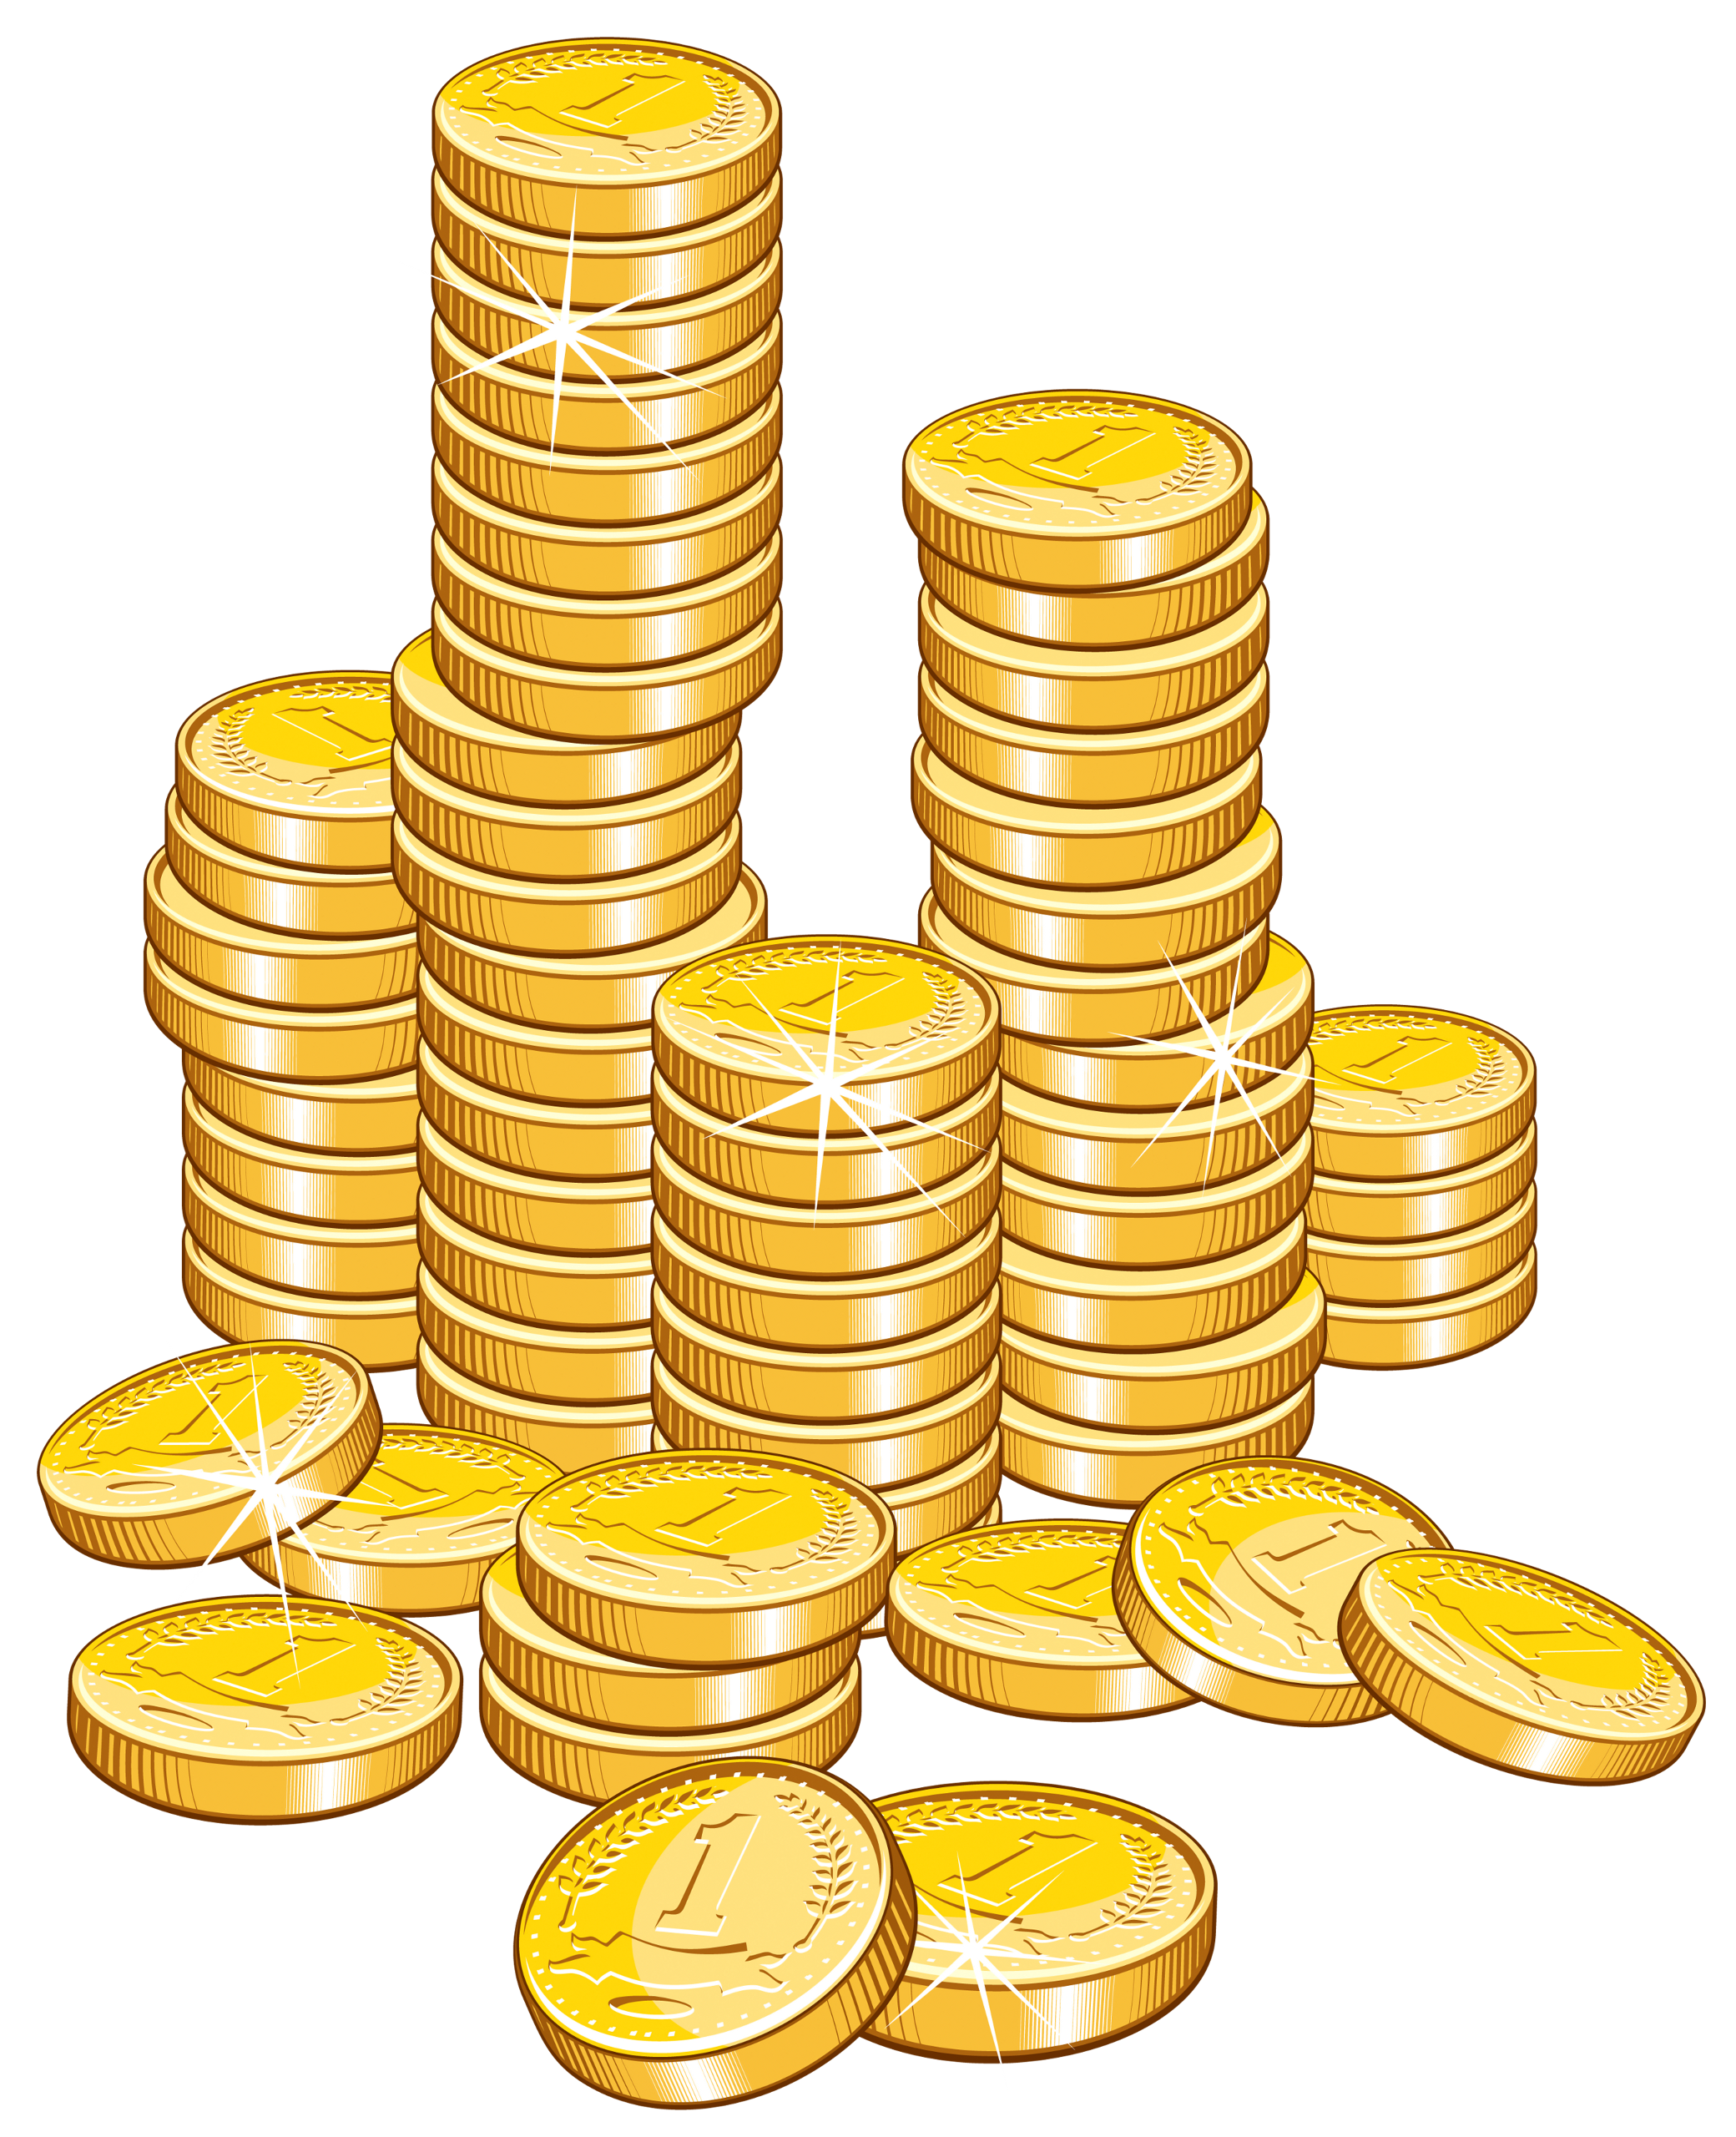 Coin Money Clipart - Clipart Kid